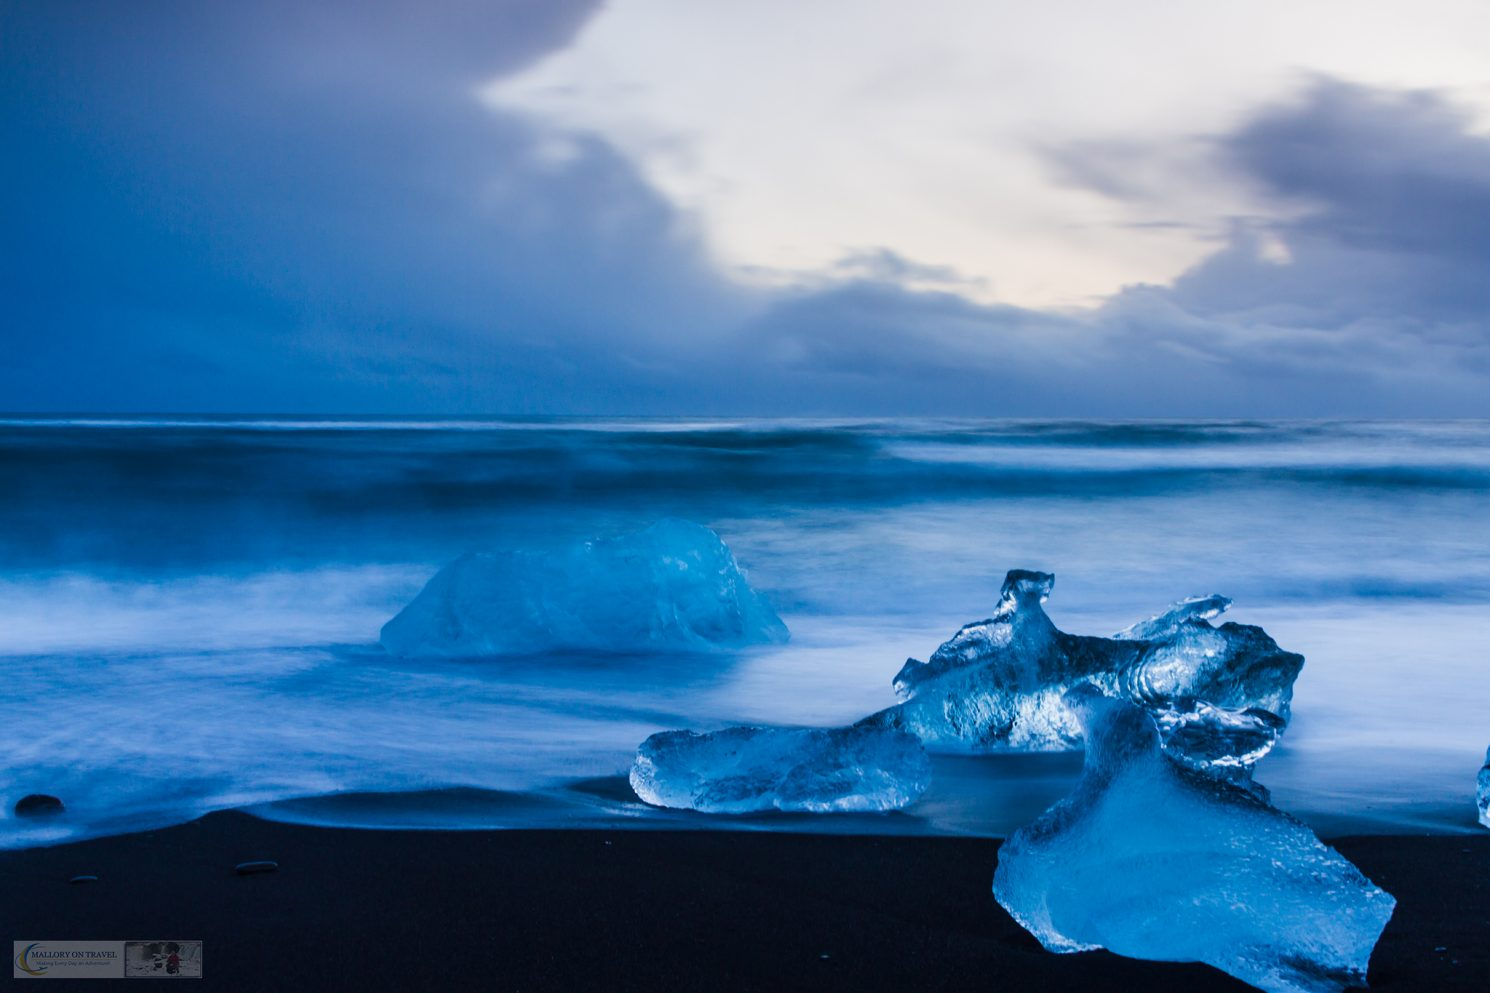 Icebergs on the beach at the ice lagoon, Jökulsárlón in the east of Iceland on Mallory on Travel adventure travel, photography, travel Iain Mallory-300-24